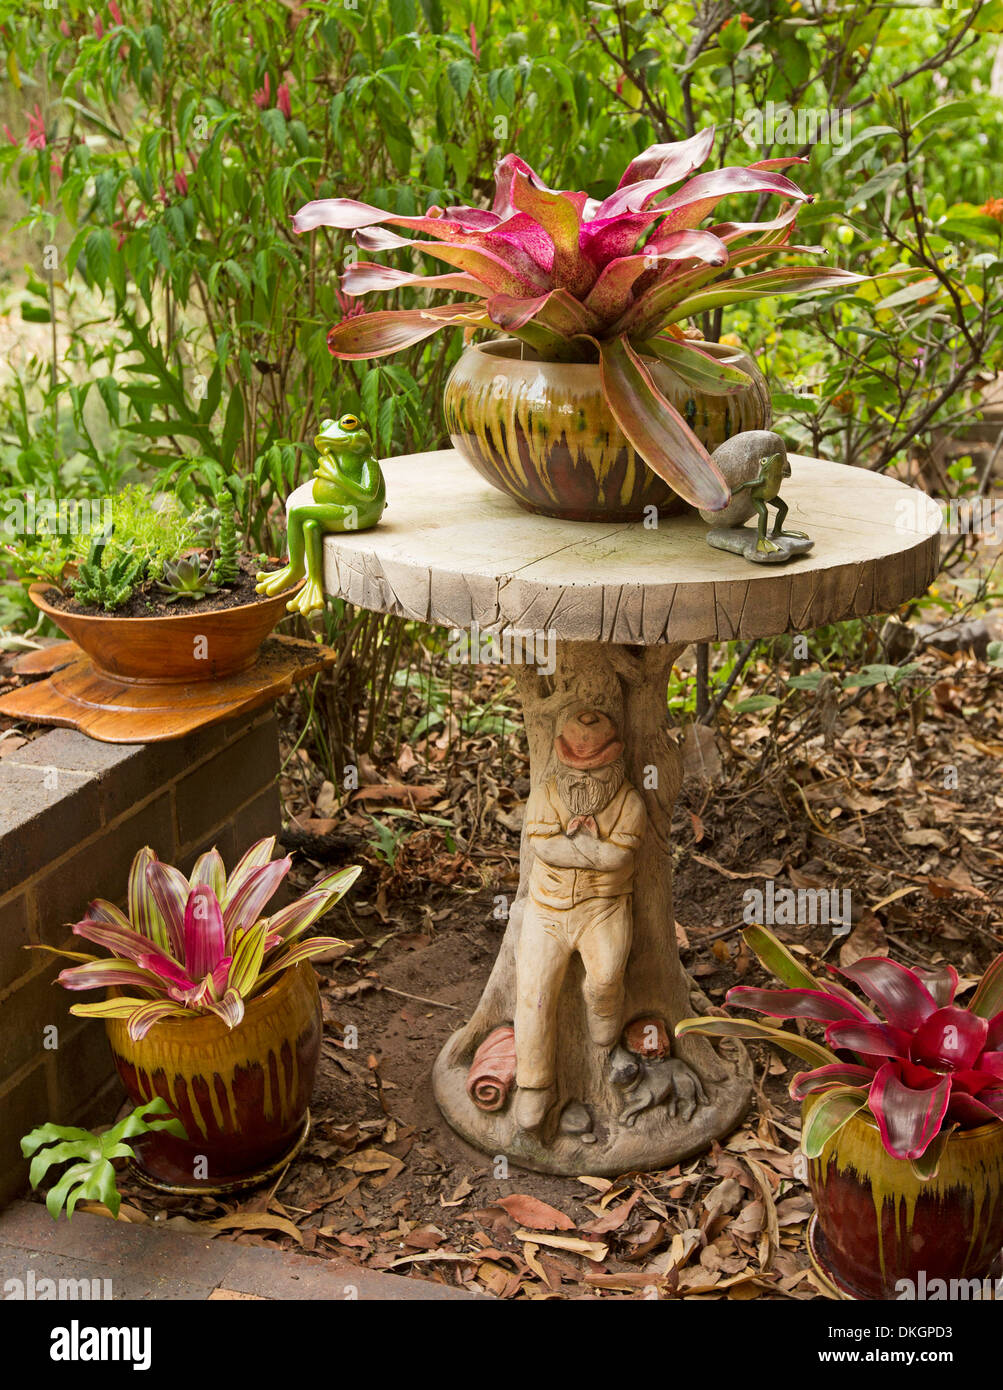 decorative concrete garden table with red leafed bromeliads in